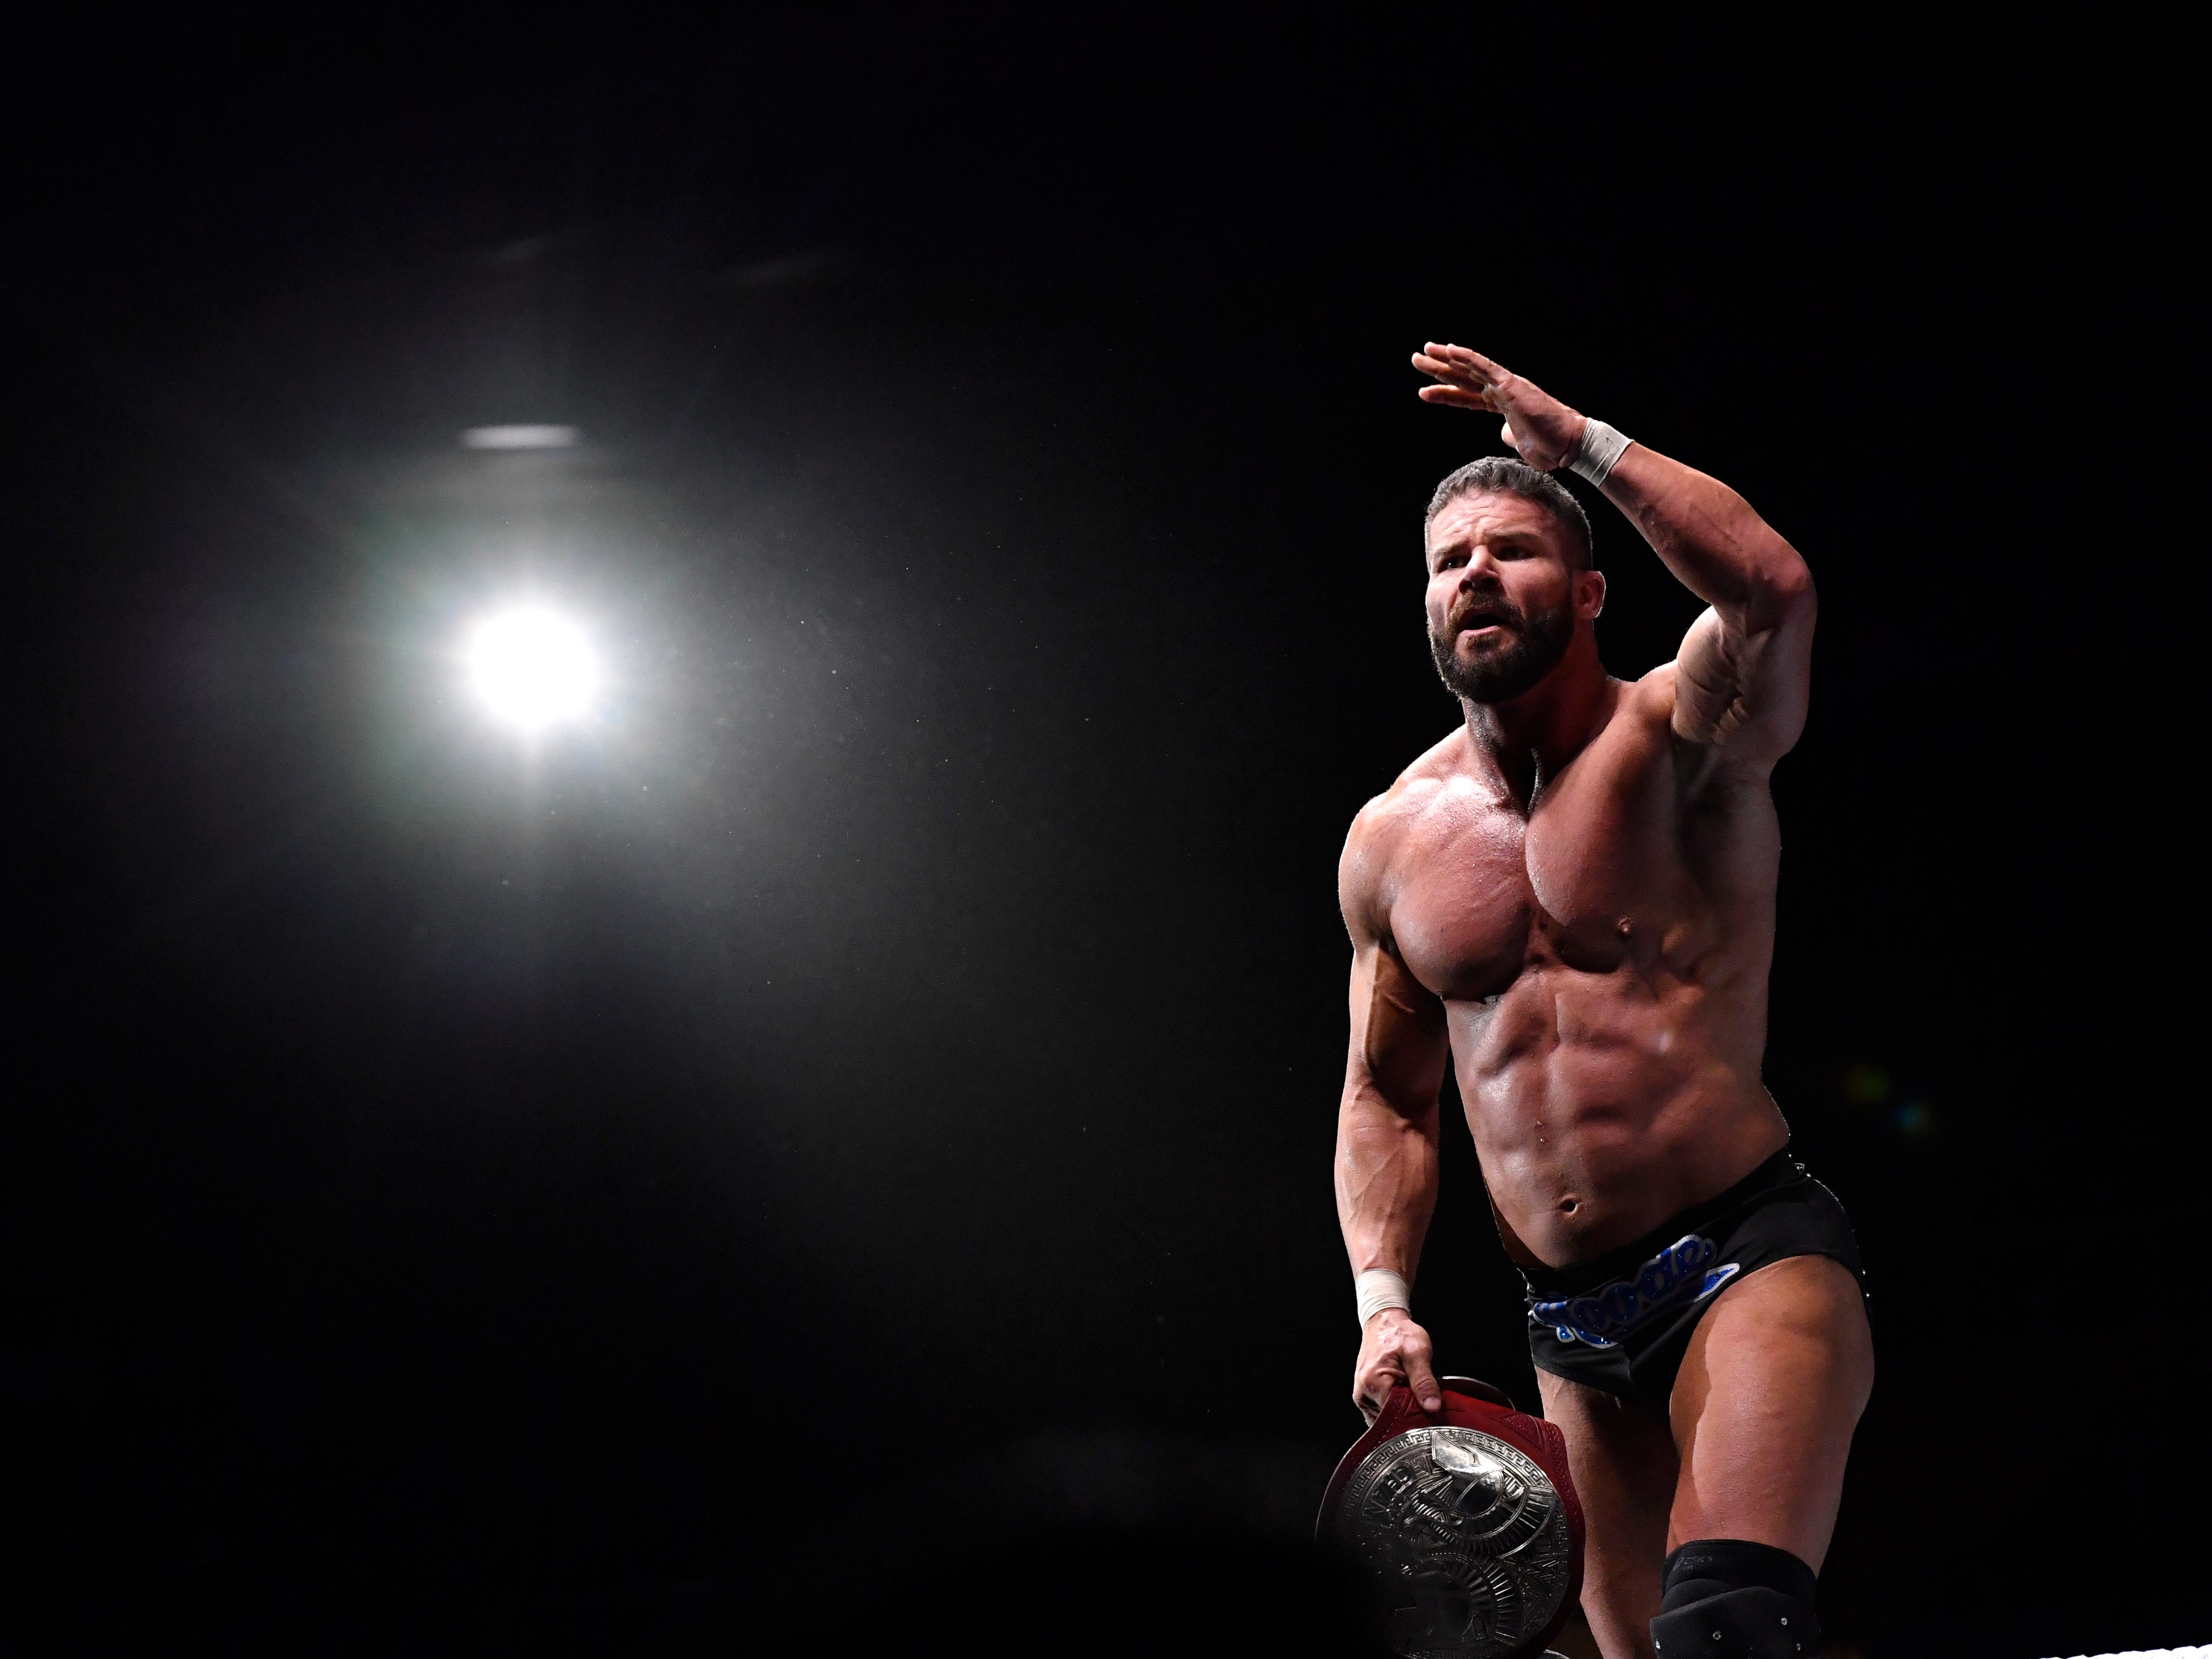 Bobby Roode stands on the ropes after he and partner Chad Gable won their tag team match during Saturday's WWE Live wrestling event Jan. 19, 2019. Held at the Taylor County Coliseum, the evening featured a colorful array of World Wrestling Entertainment stars.